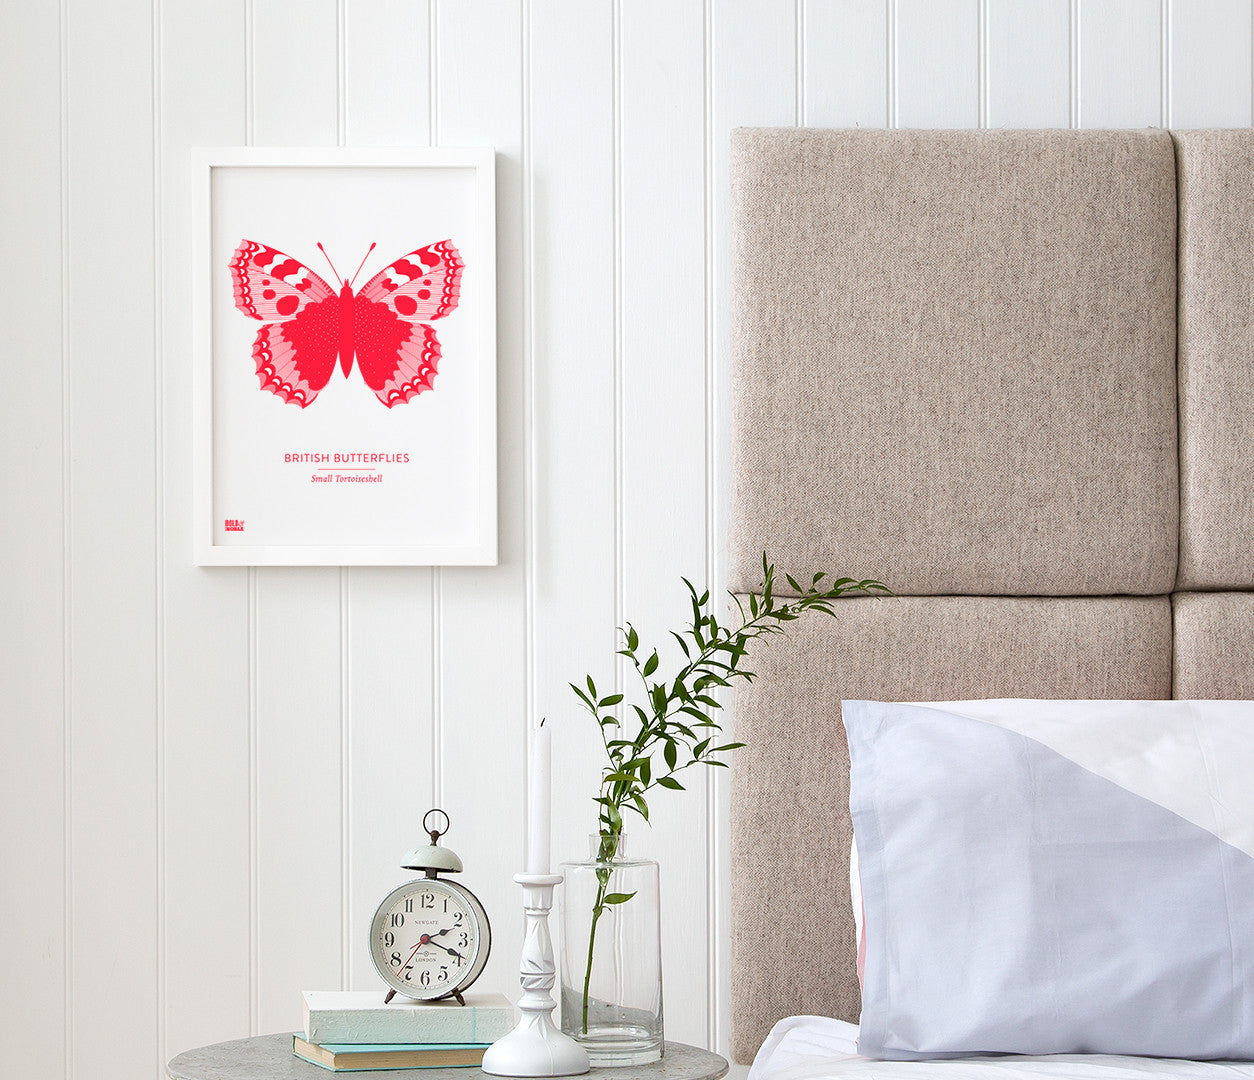 British Butterflies 'Small Tortoiseshell' Print in Neon Red